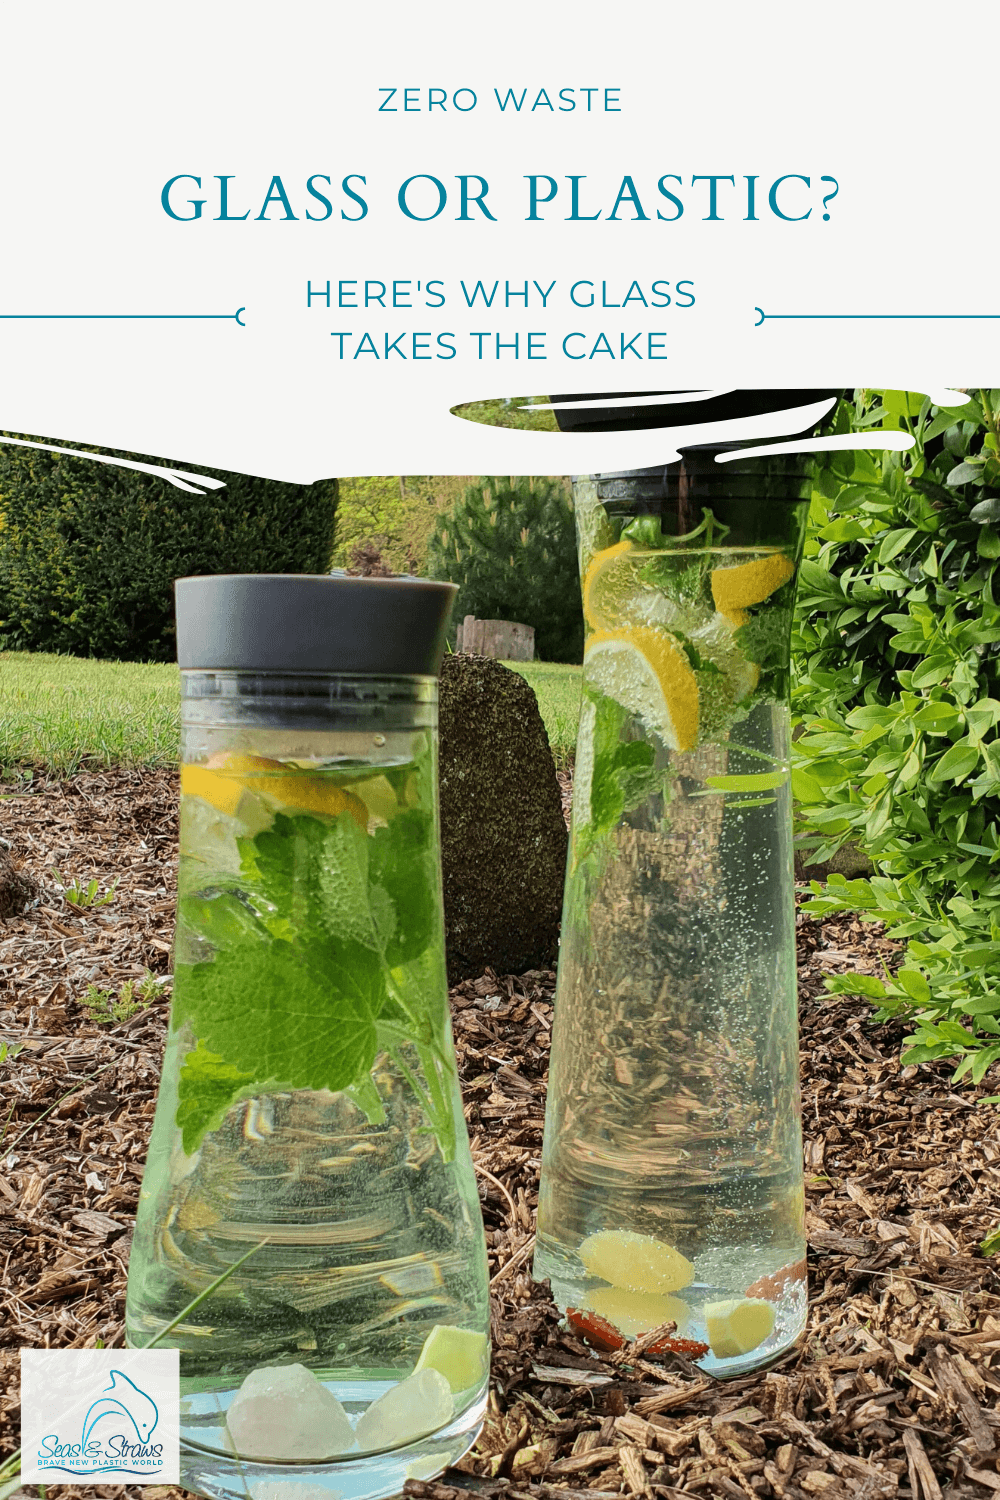 Glass or plastic? Here's why glass takes the cake. Seas & Straws